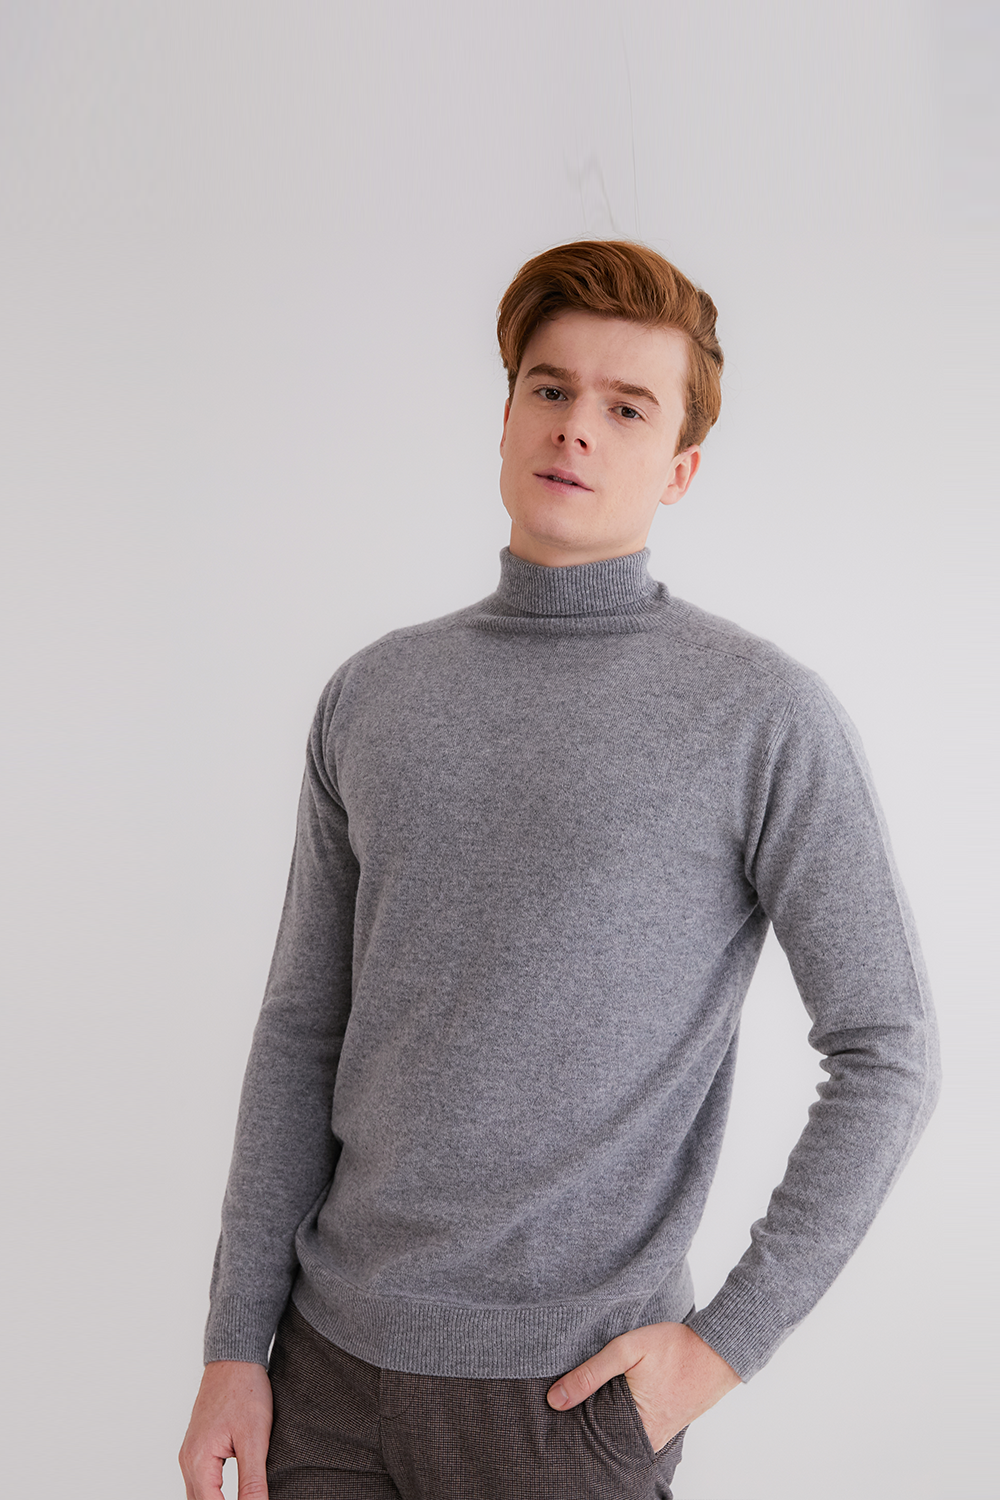 프리미엄 캐시미어 100 남성 스웨터 [Pure cashmere100 turtleneck sweater by whole-garment knitting - Light gray]